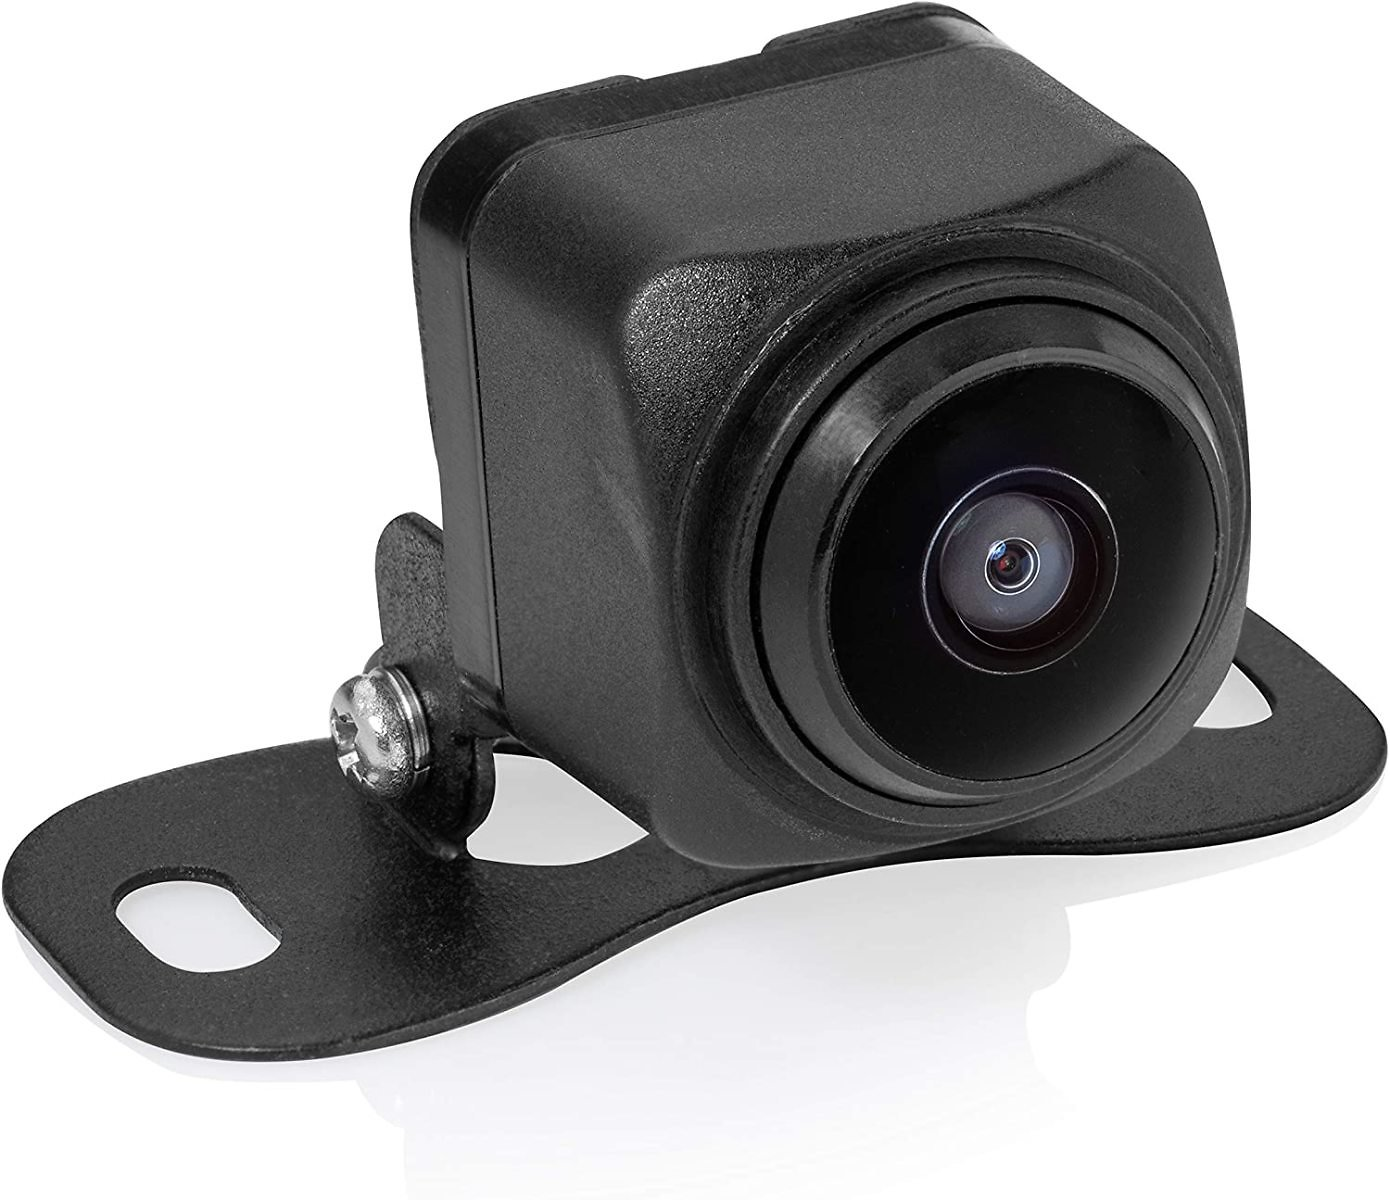 BOYO Universal Mount Backup Camera with Super Wide View Angle